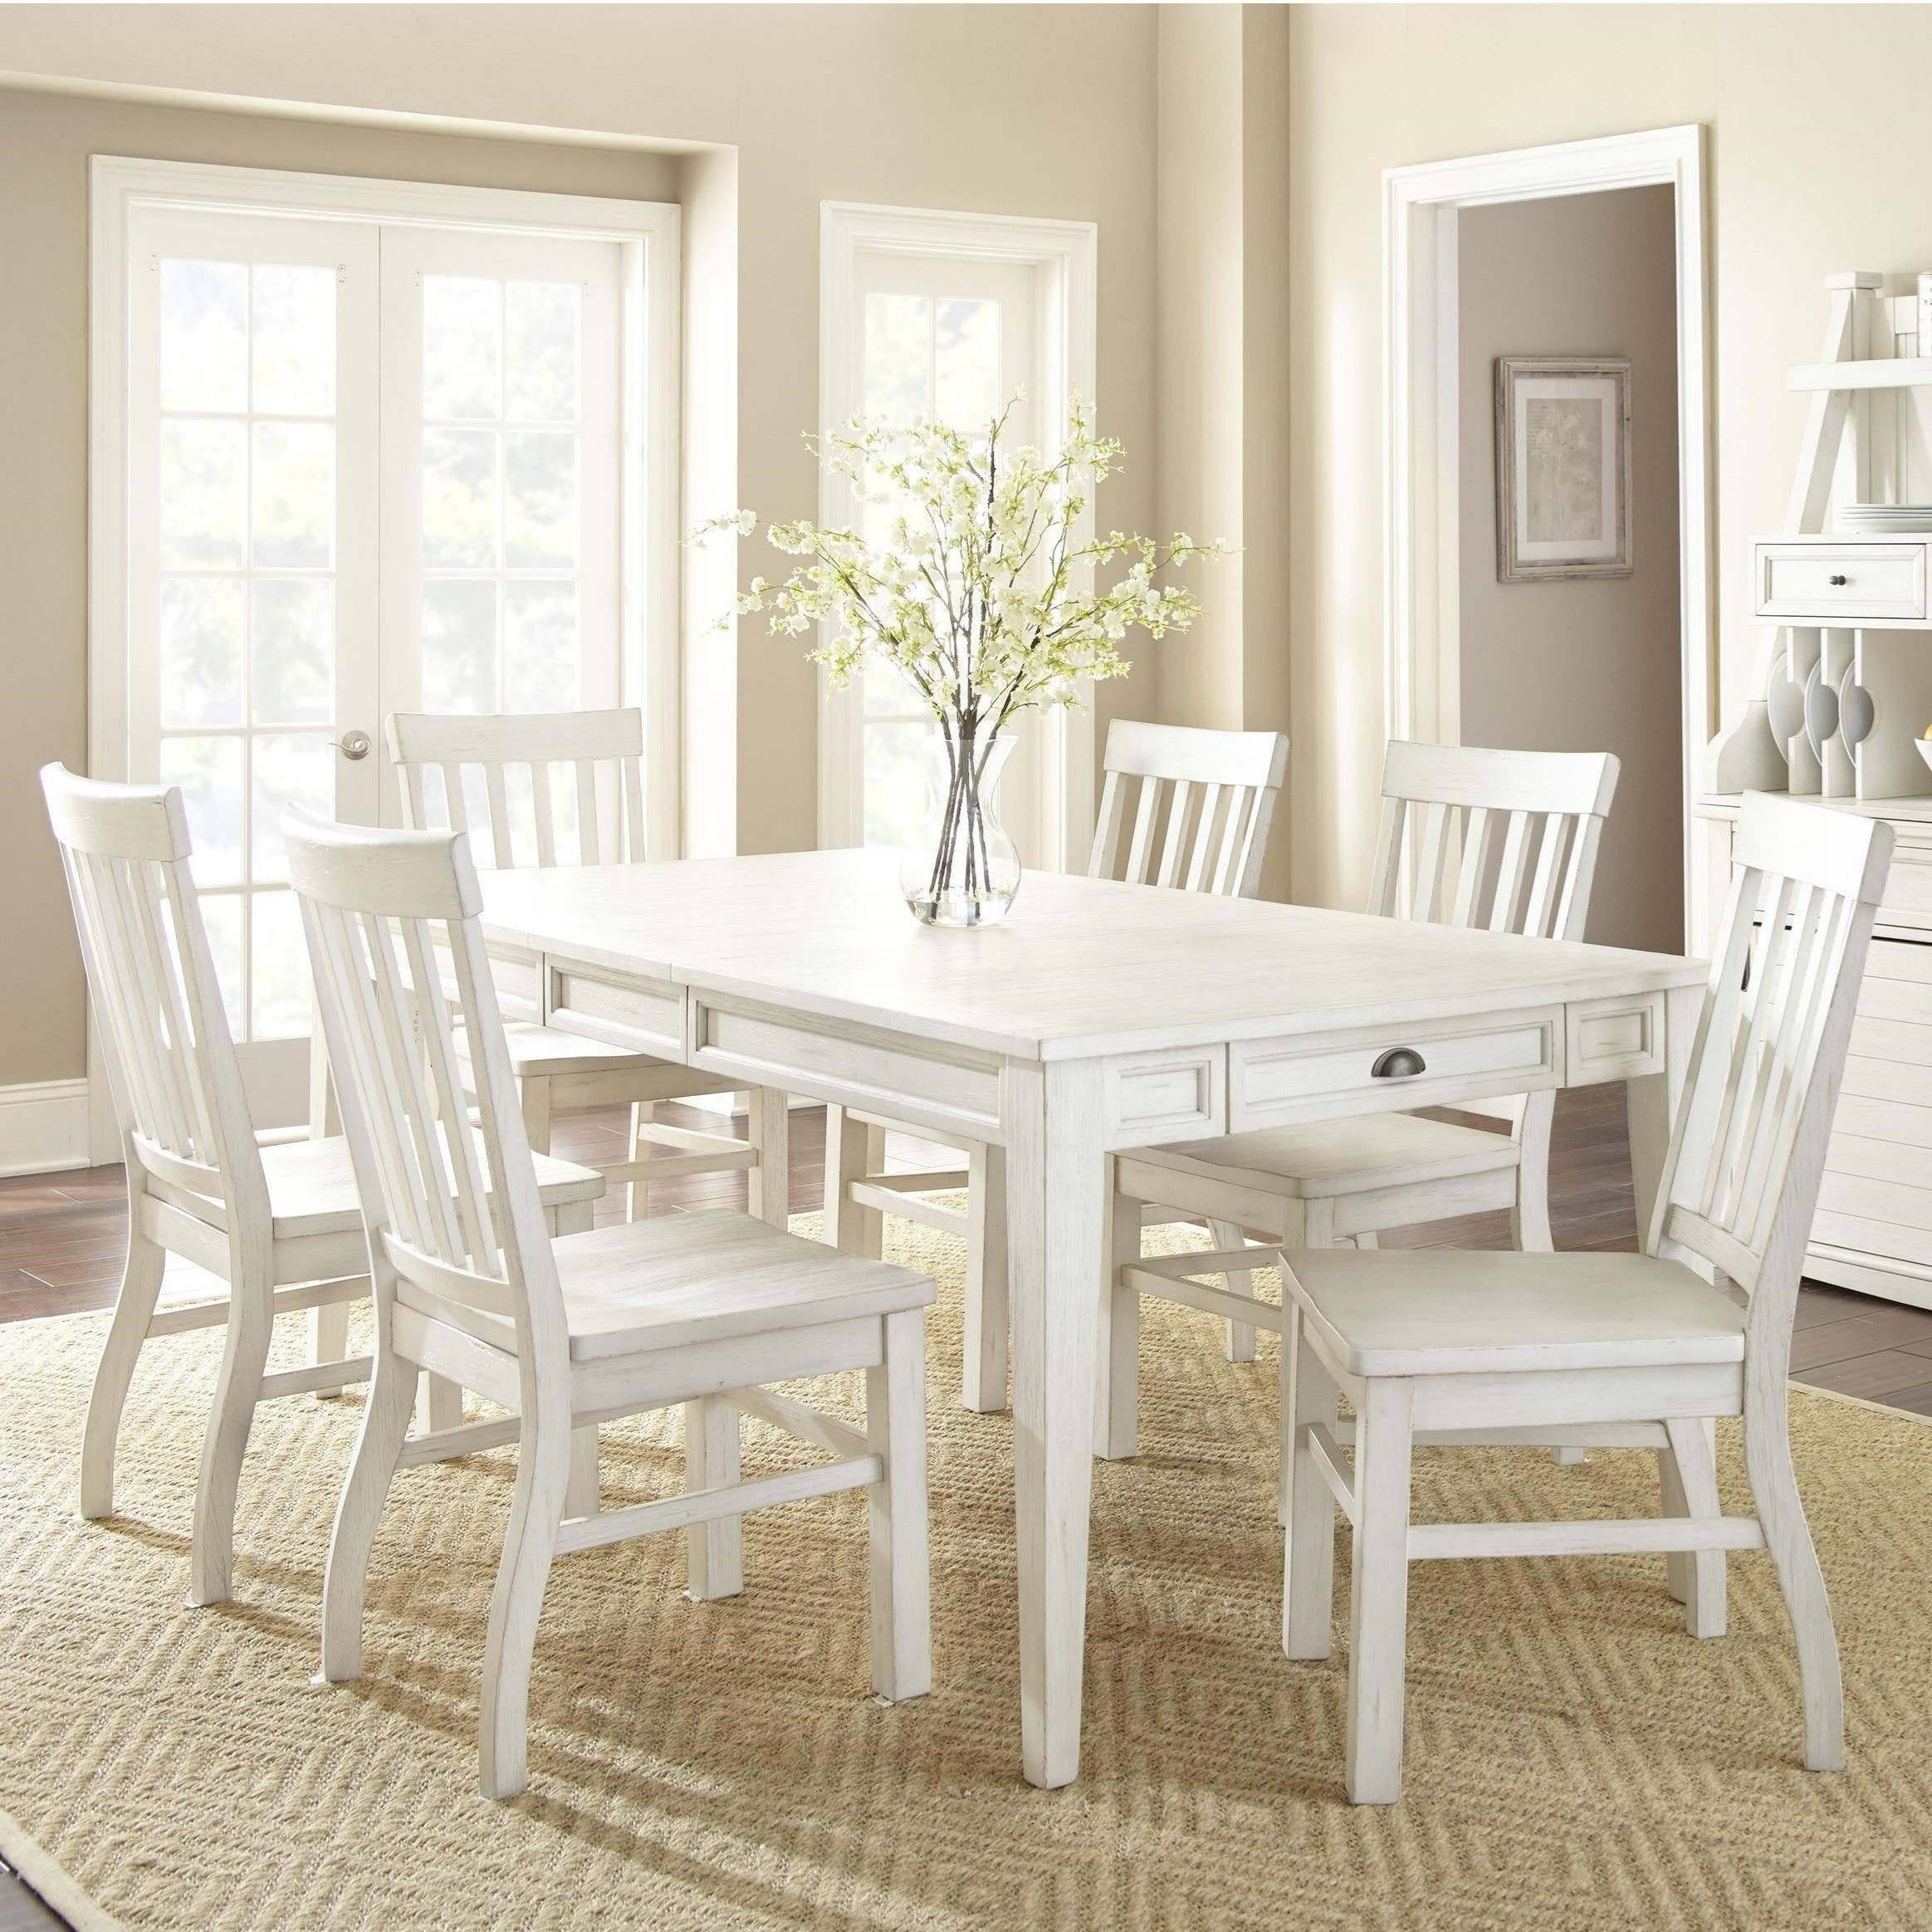 Cayla 5 Piece Farmhouse Dining Set With Table Storage By Steve Silver At Wayside Furniture Dining Table Dining Room Sets Dining Table Setting